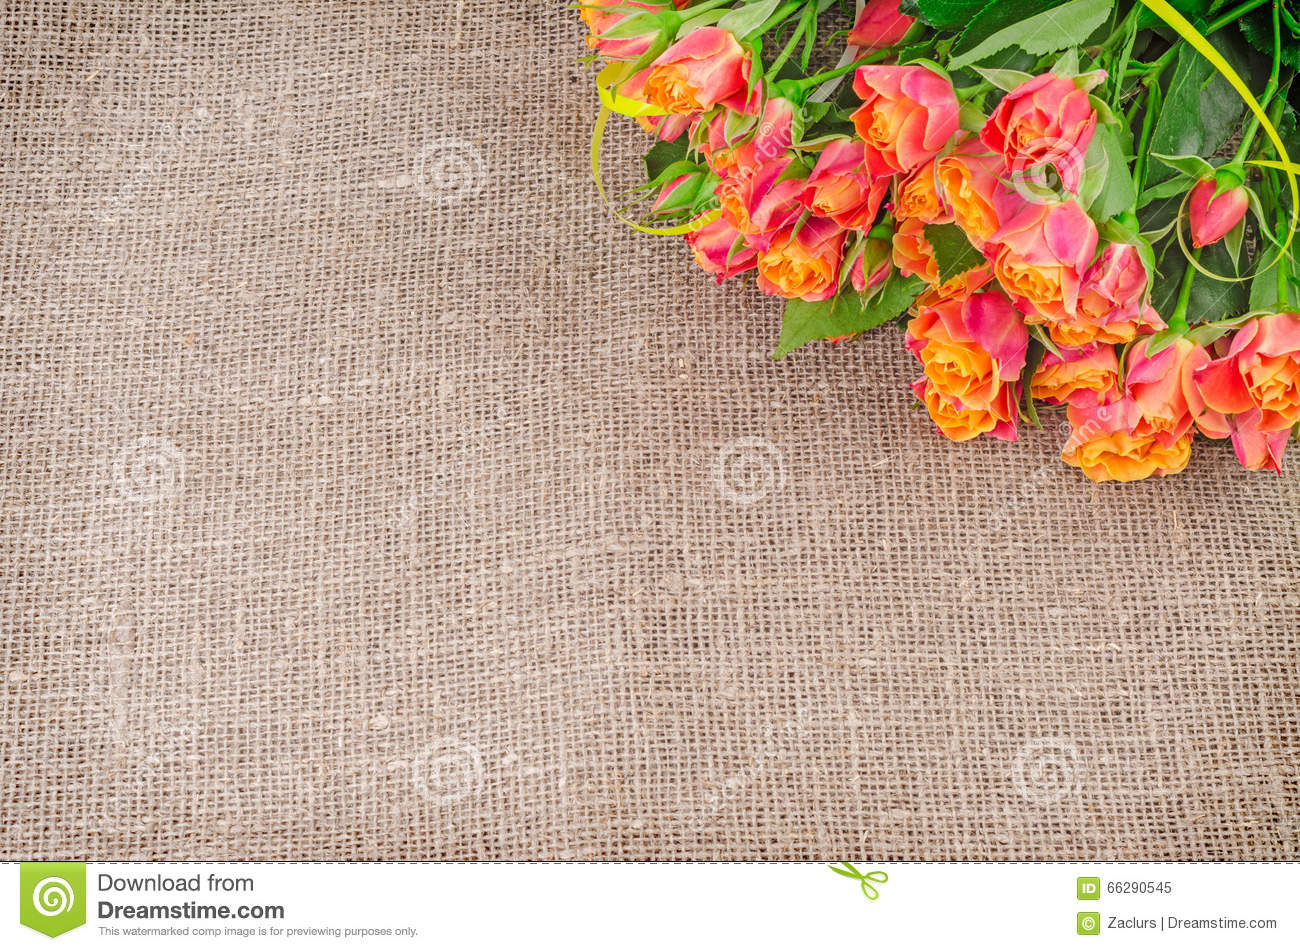 Roses Bouquet On Rustic Jute Background Stock Photo